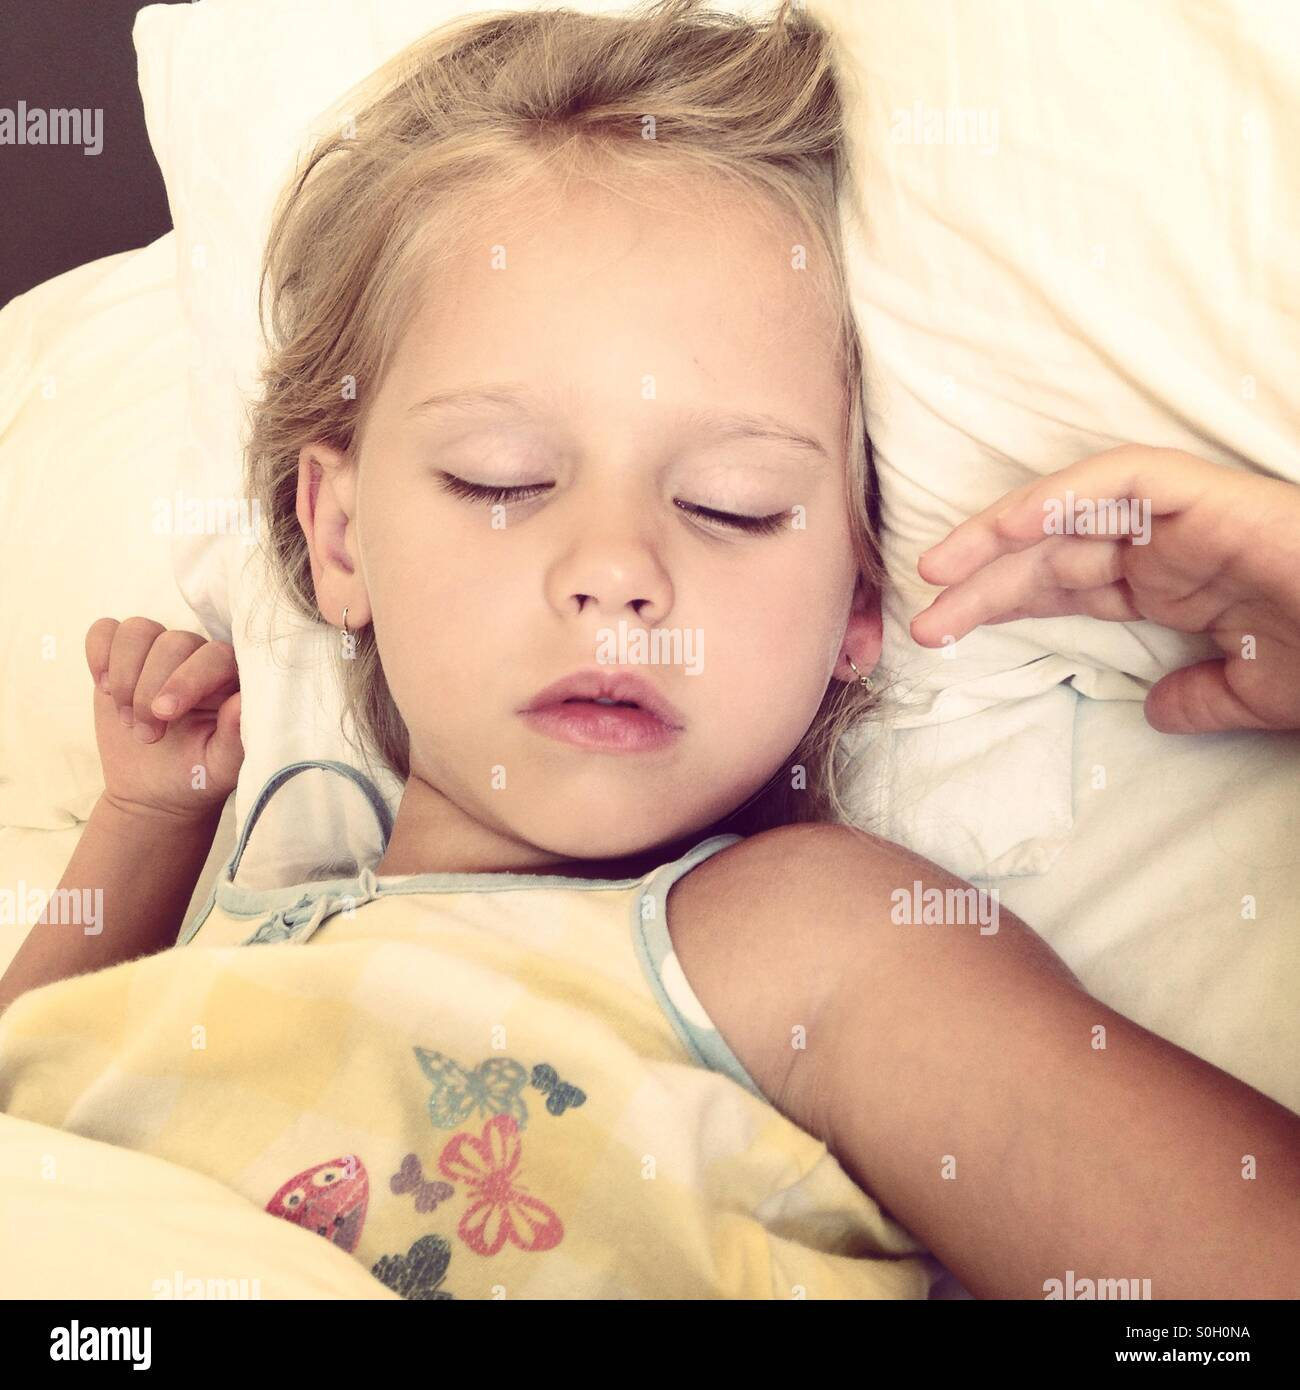 Sleeping little beauty - Stock Image